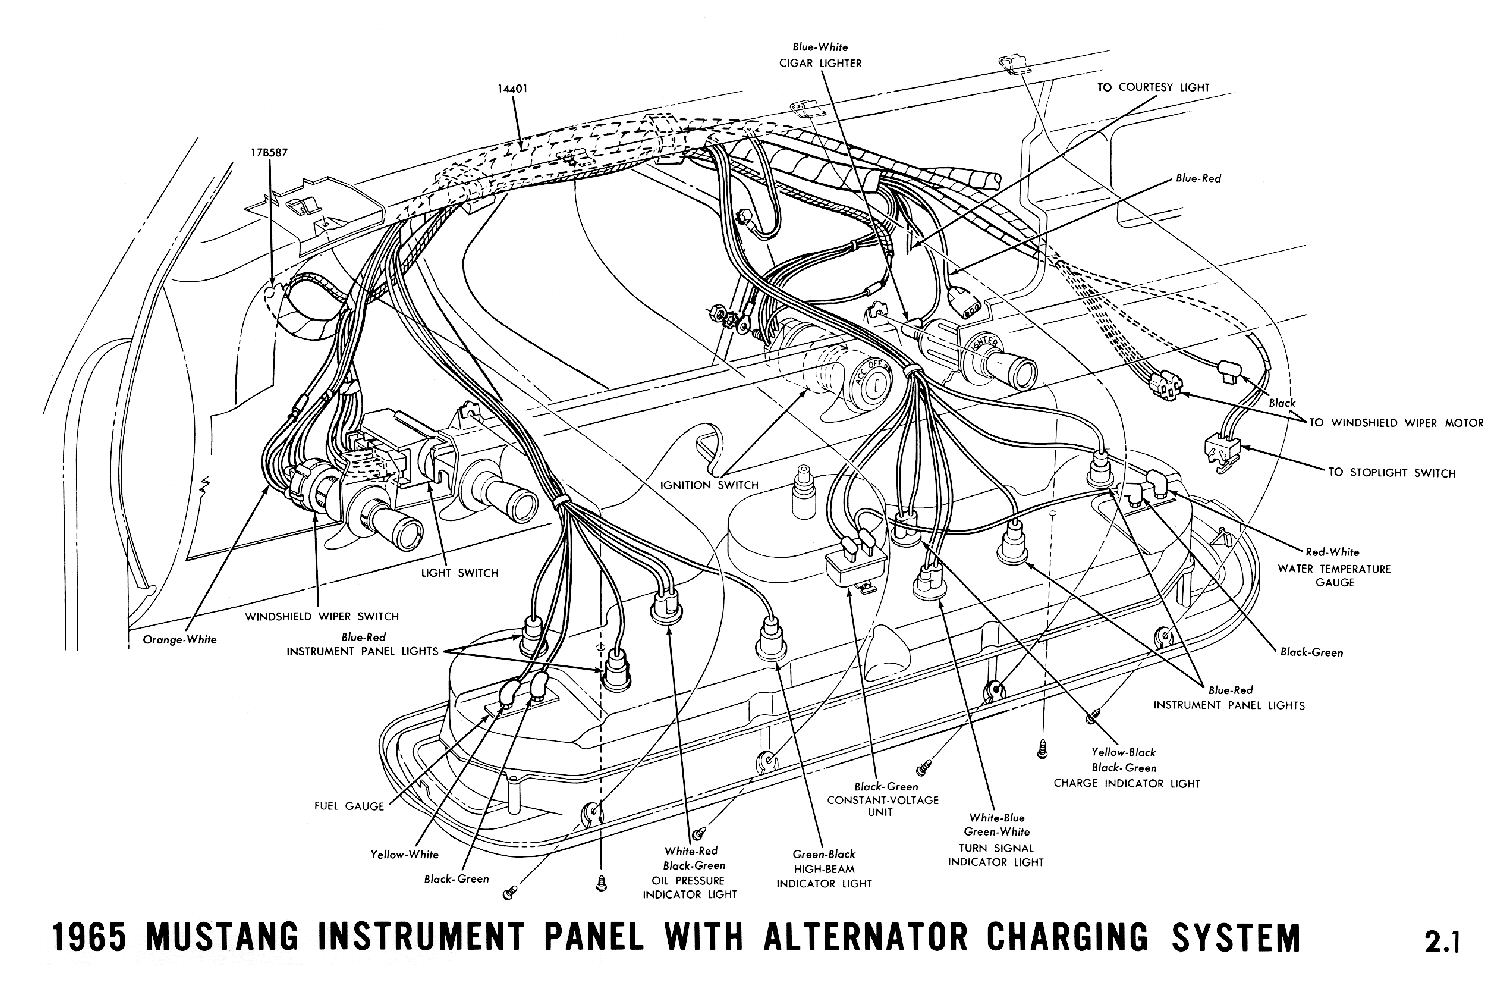 1965 mustang wiring diagrams average joe restoration rh averagejoerestoration com mustang wiring harness kits mustang wiring harness kits